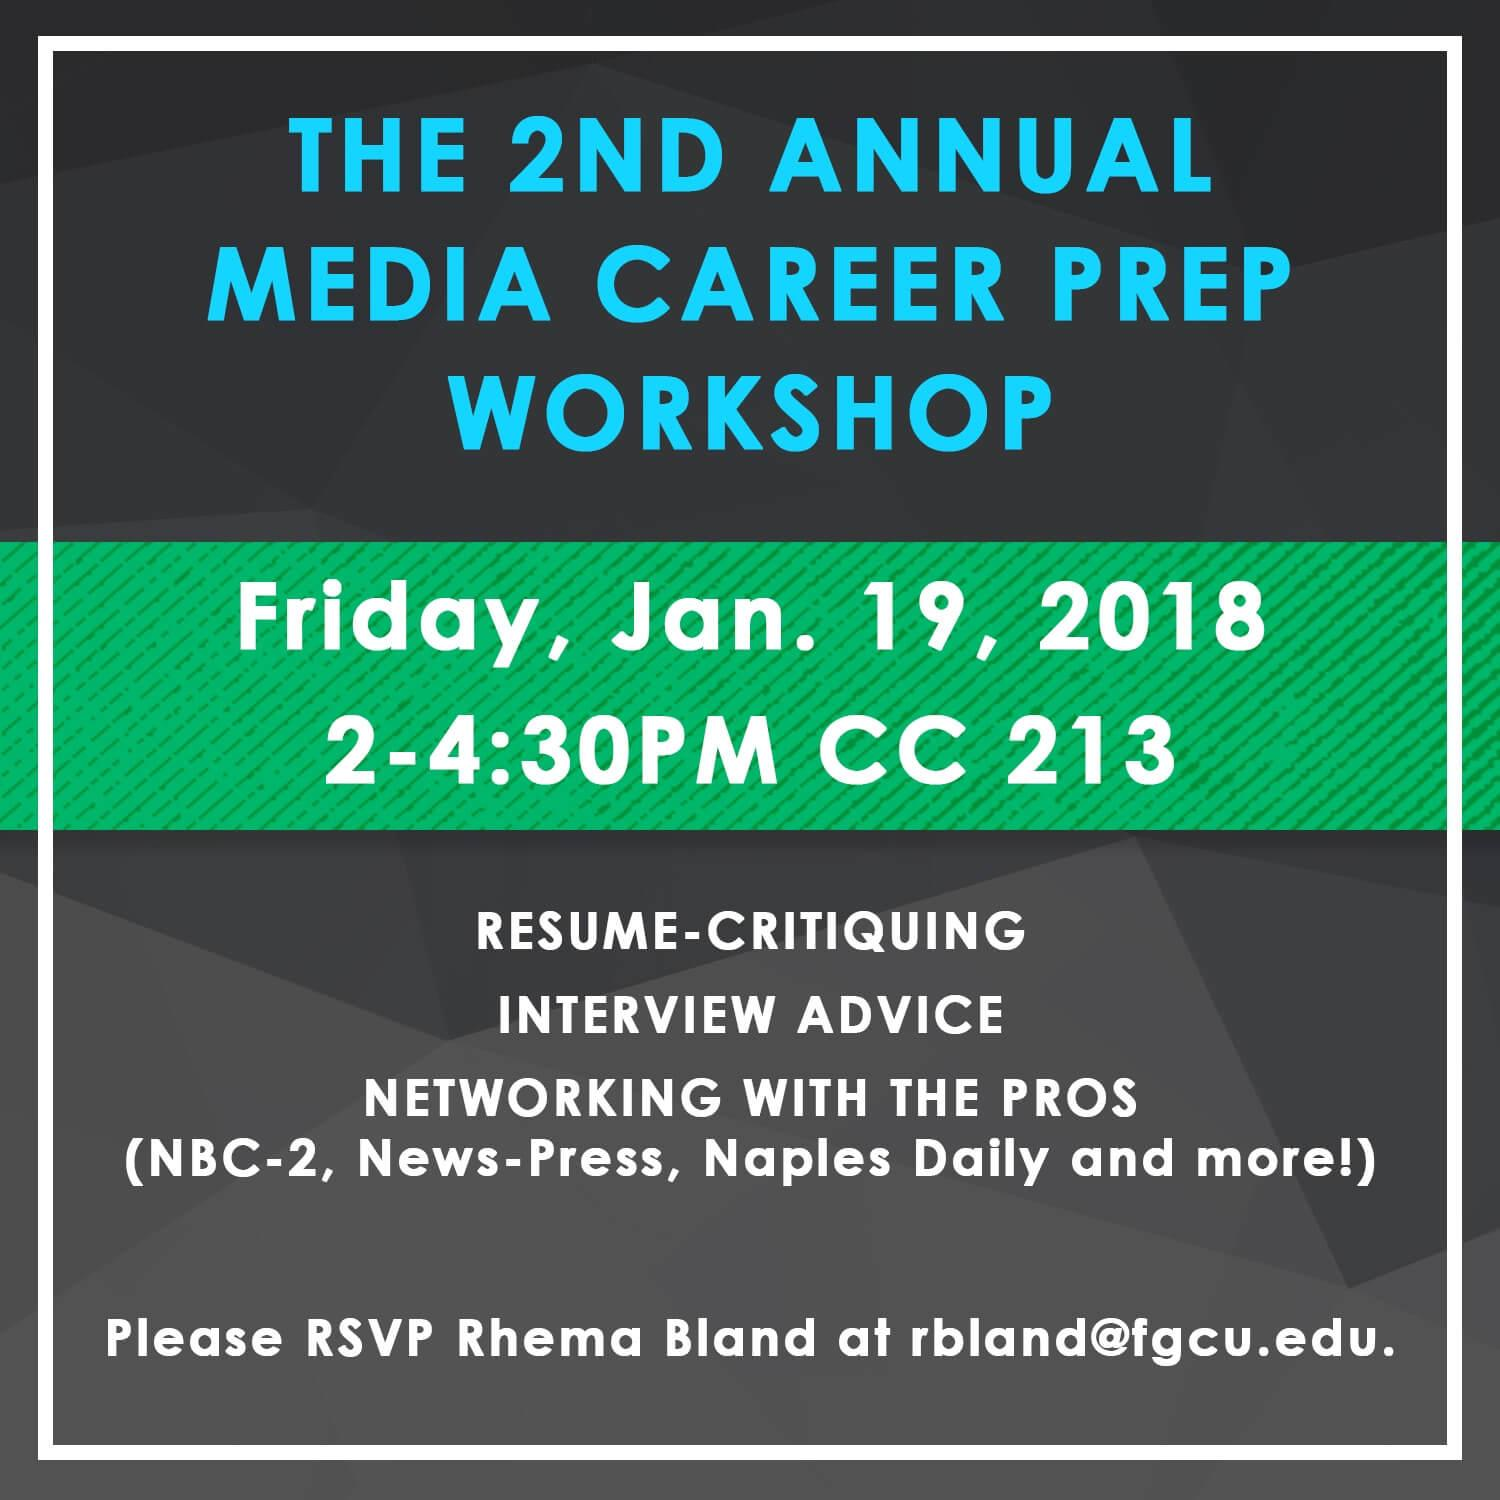 http://eaglenews.org/wp-content/uploads/2018/01/career-prep-workshop_2018-copy.jpg